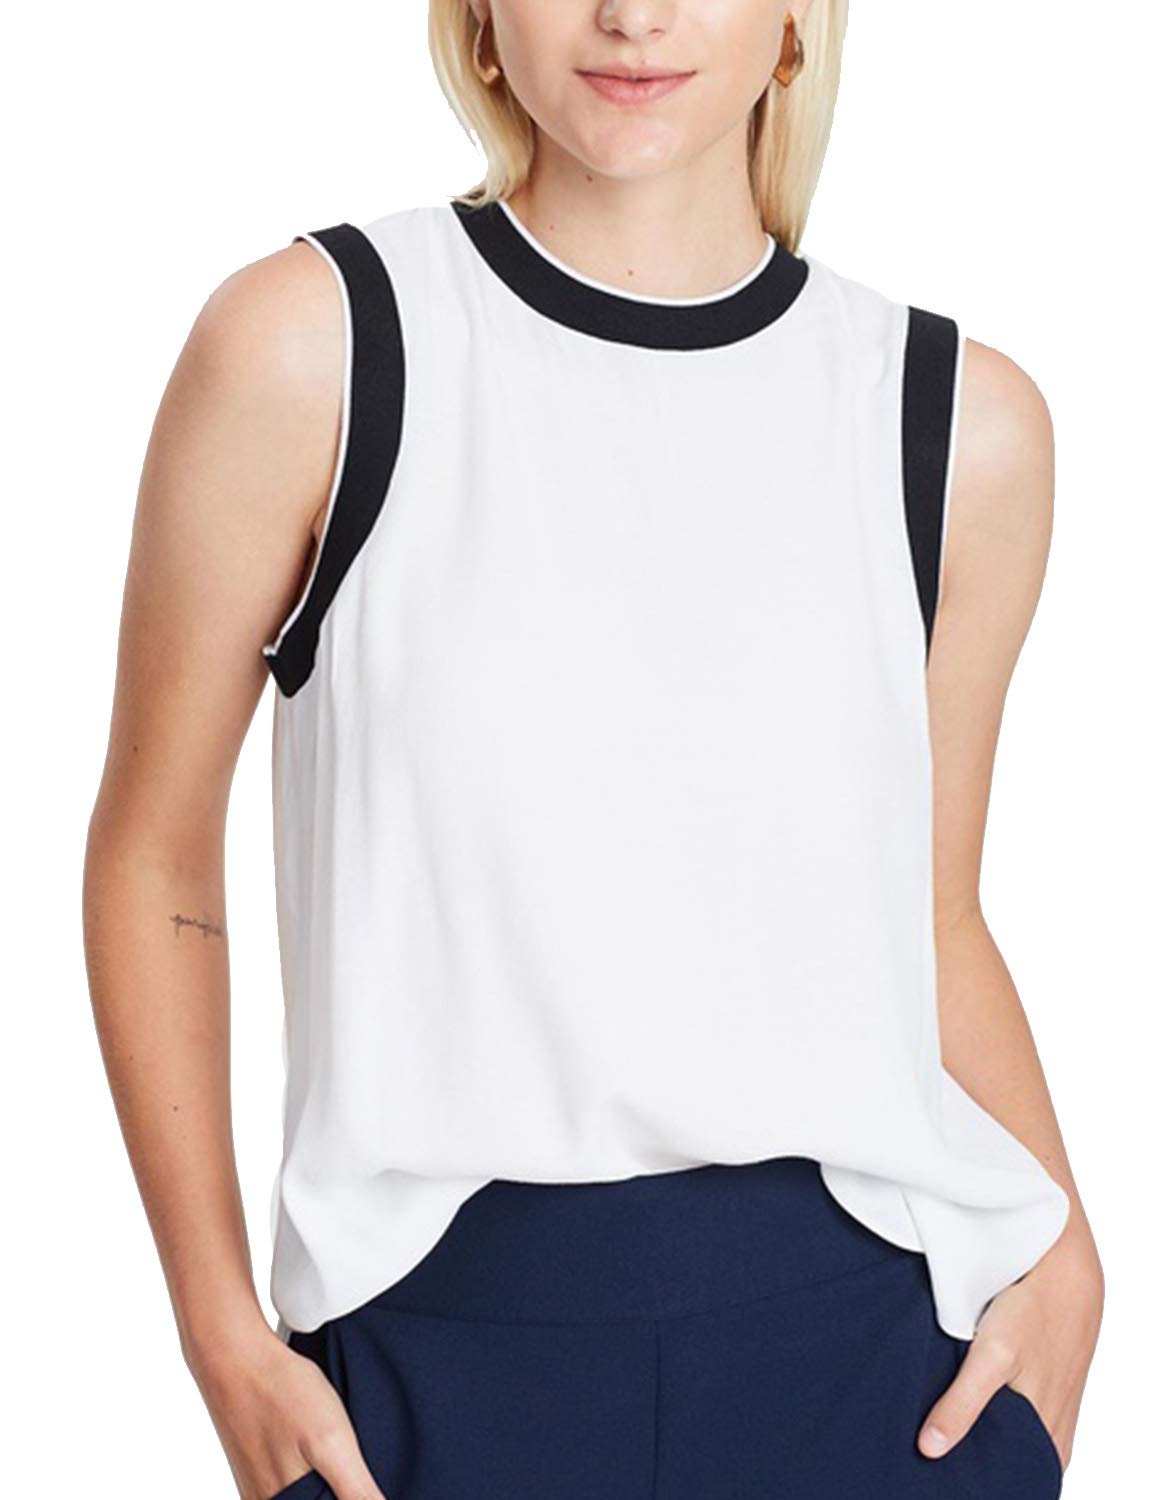 Blooming Jelly Women's Crew Neck Sleeveless Color Block Black White Top